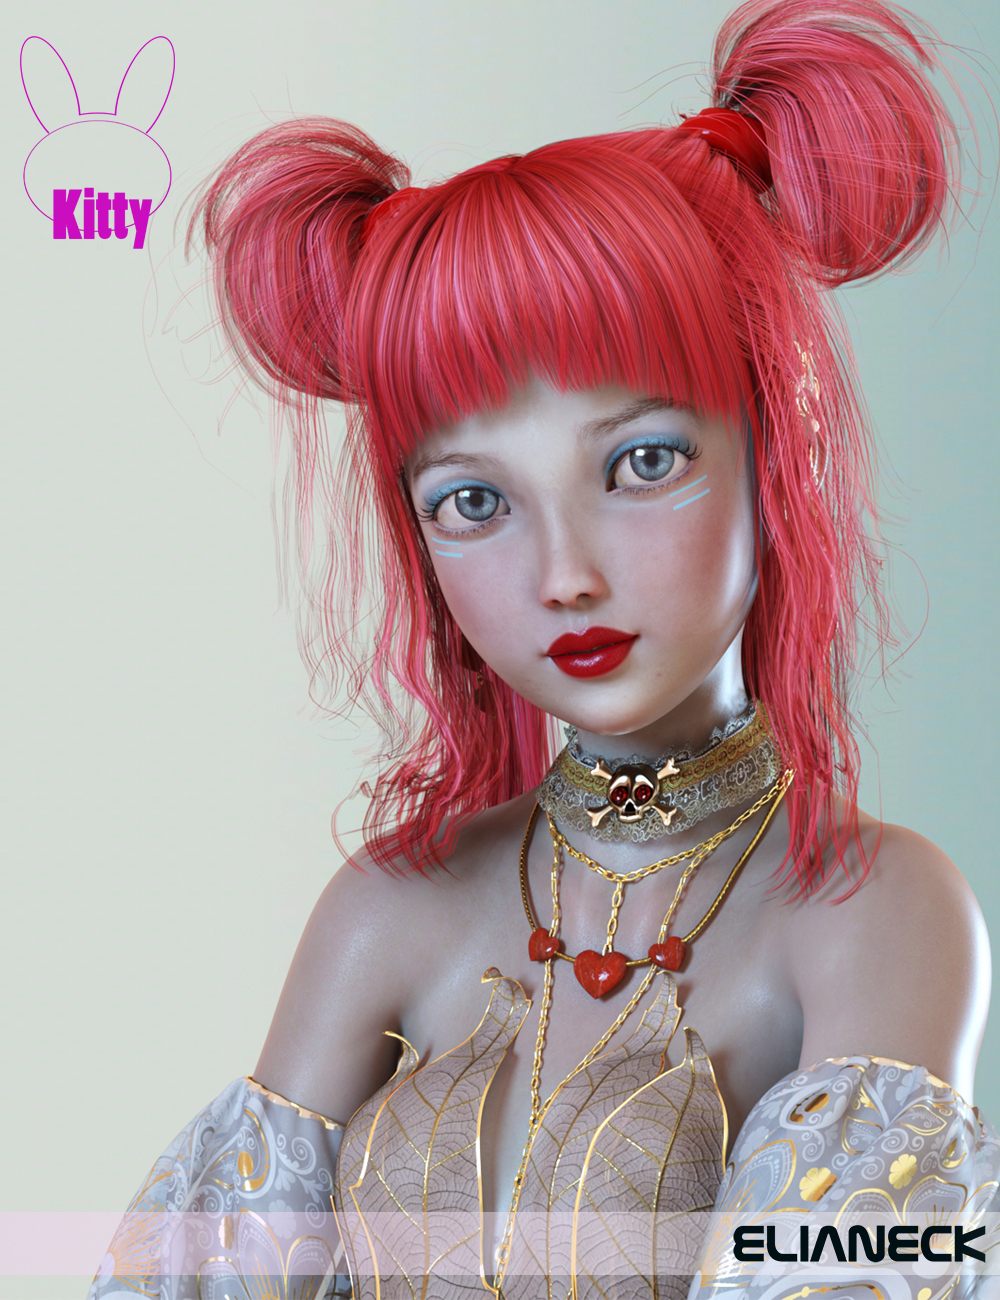 Kitty for Kanade 8 by: Elianeck, 3D Models by Daz 3D